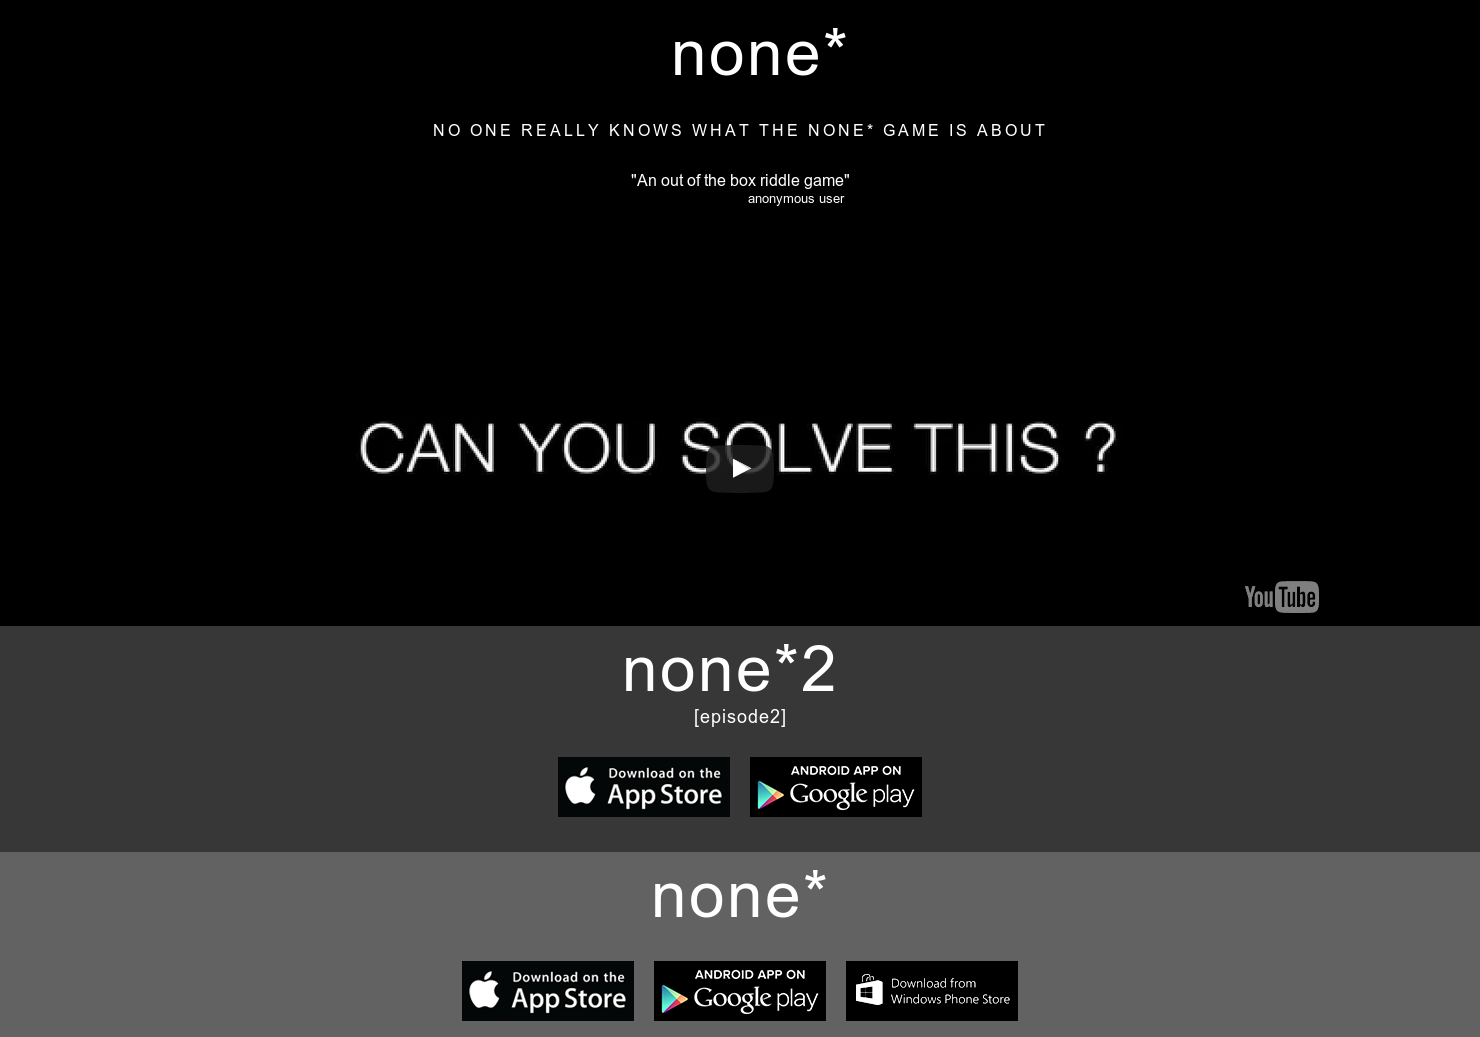 none* - A mysterious game of riddles